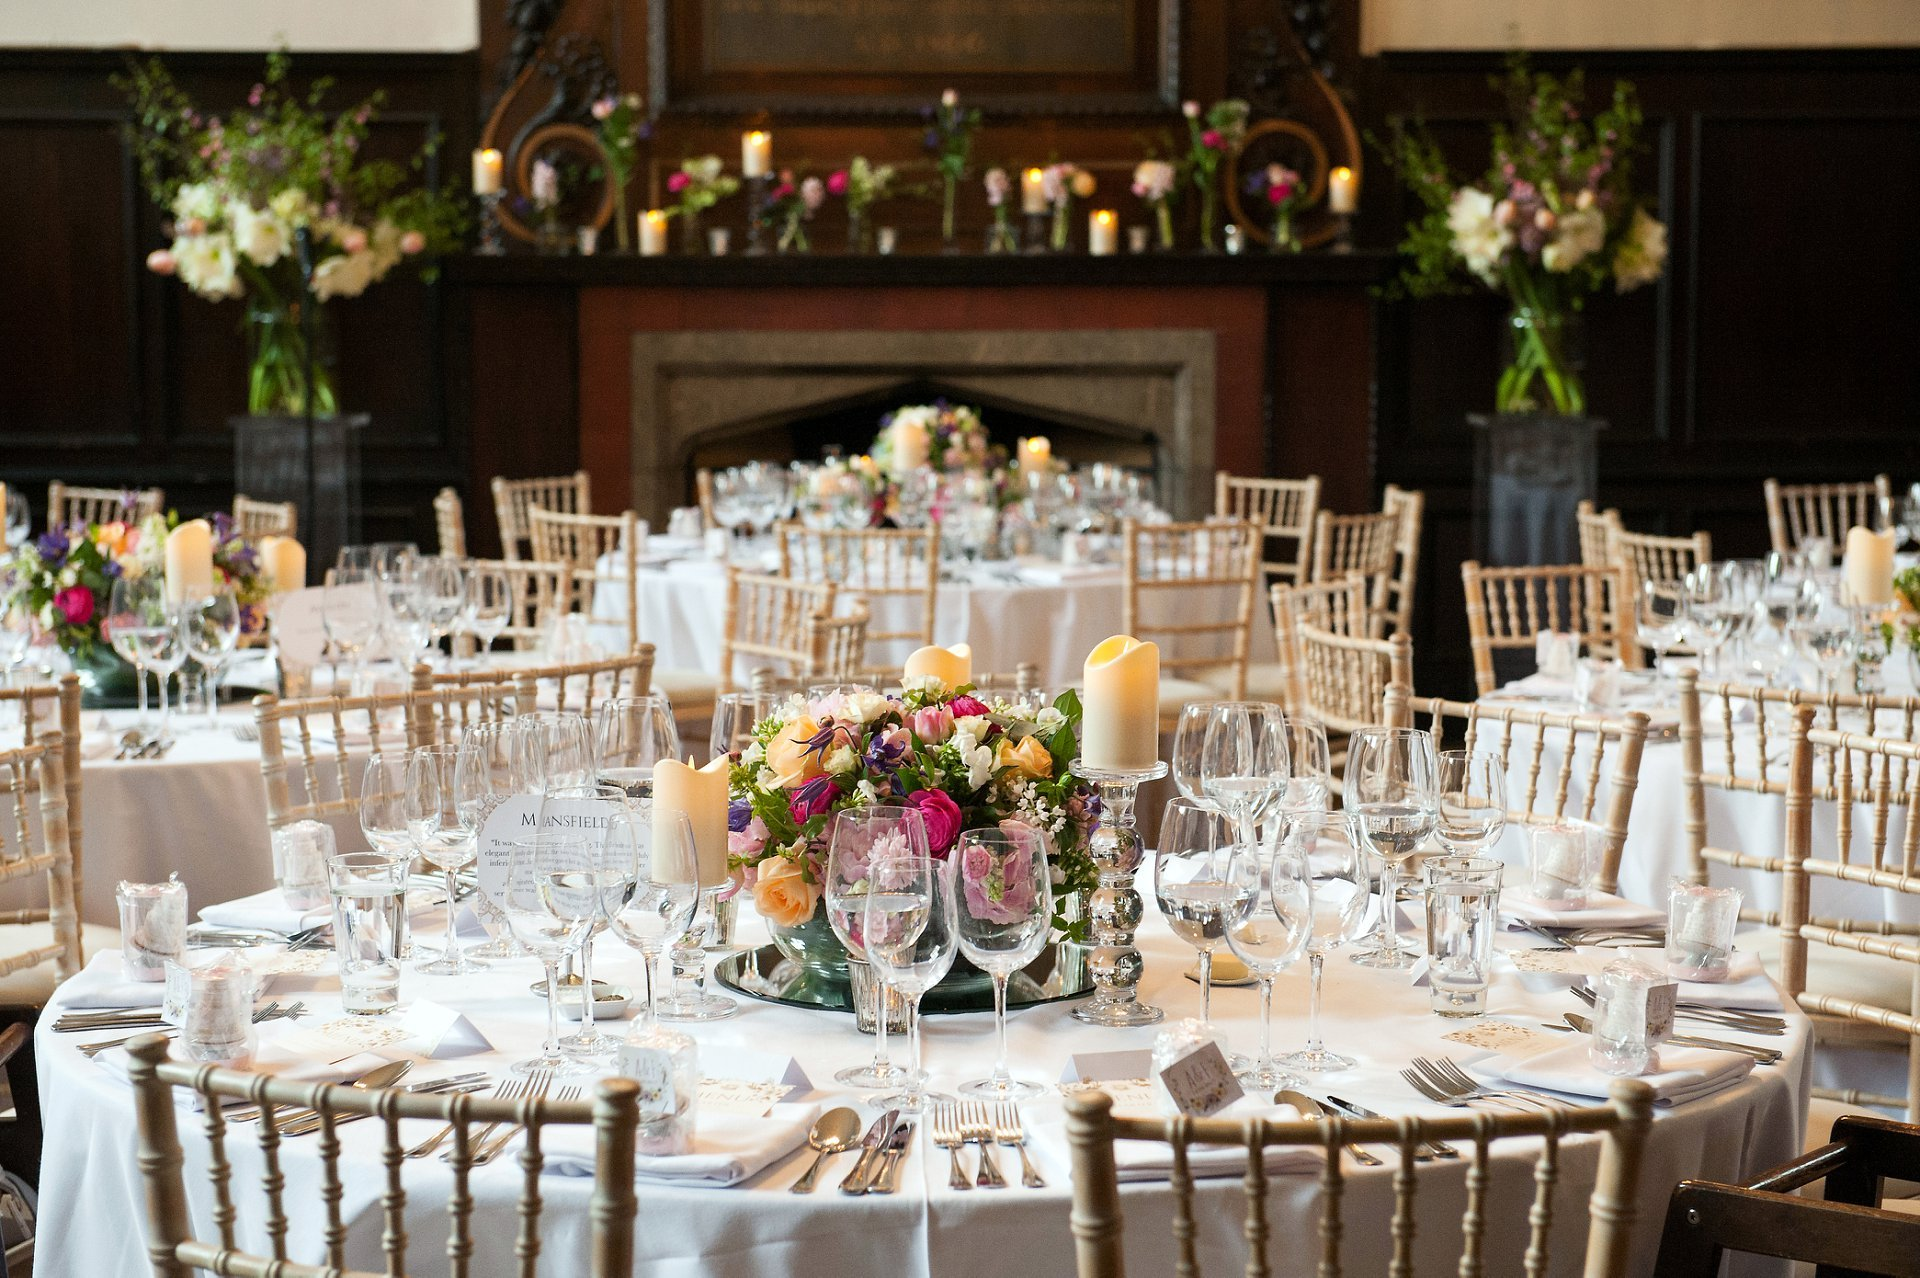 Fulham Palace Great Hall Wedding - tables laid for Adam and Feriel's wedding breakfast